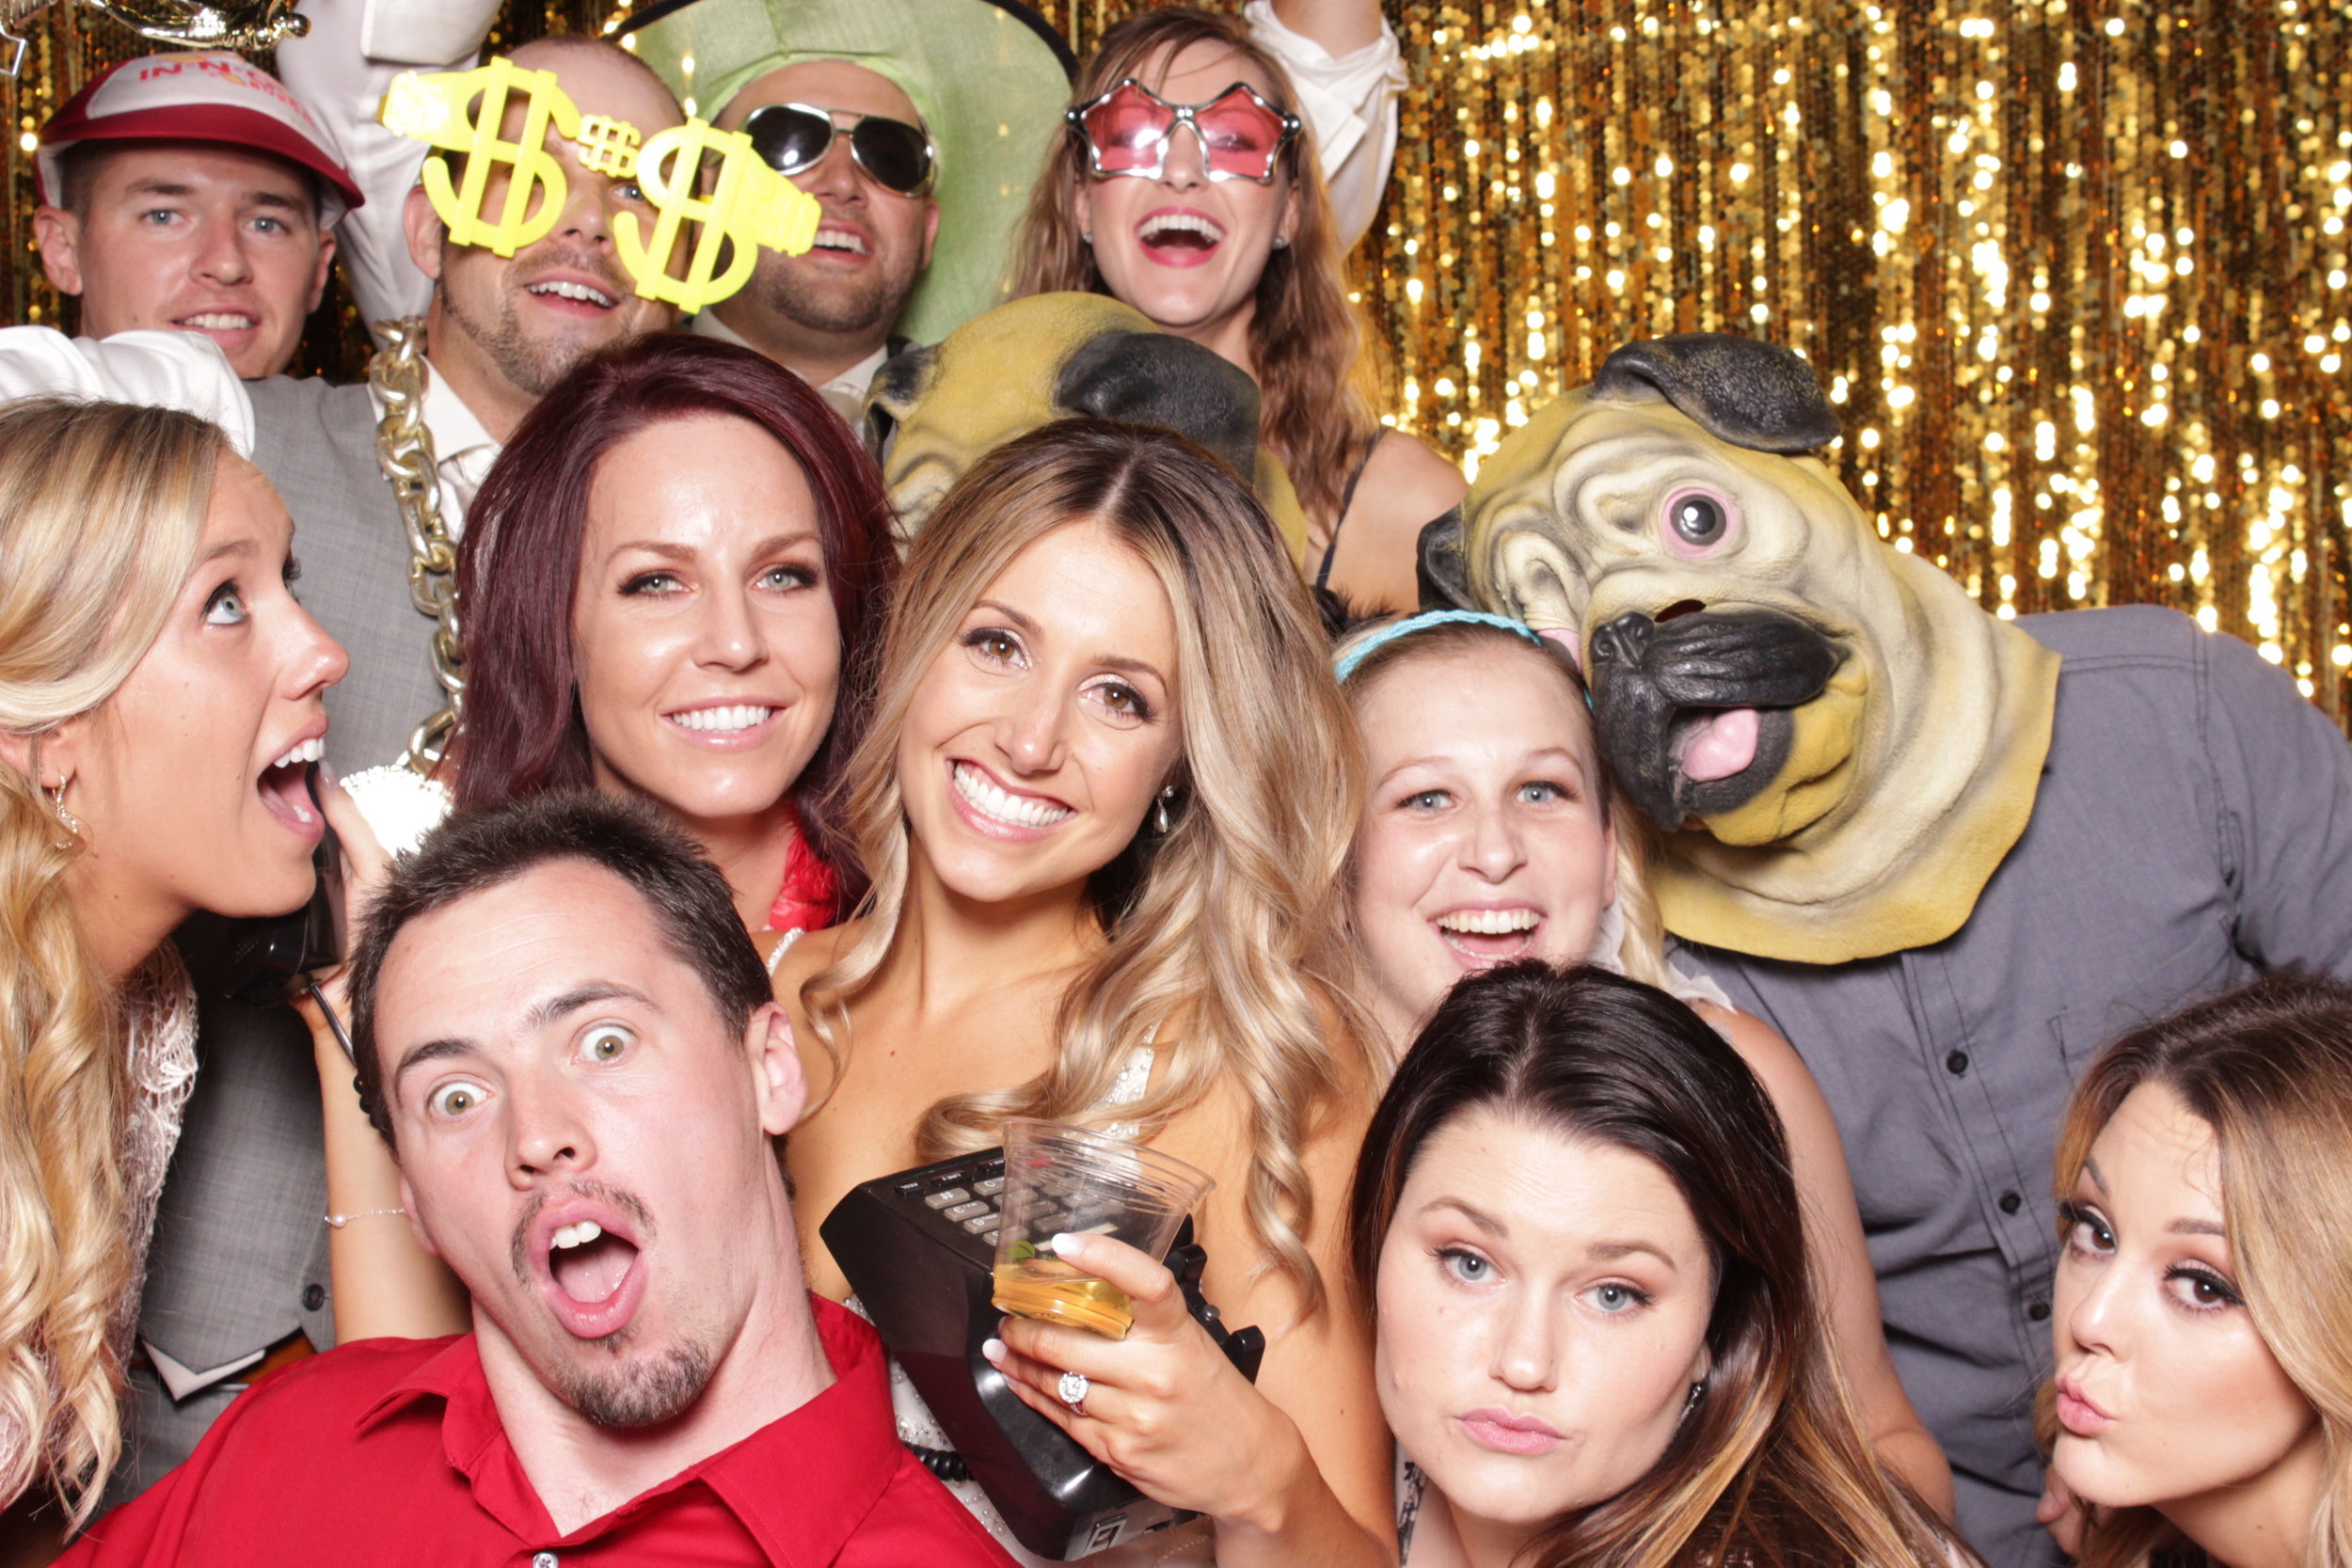 photo-booths-in-chico-rental-wedding-party-fun